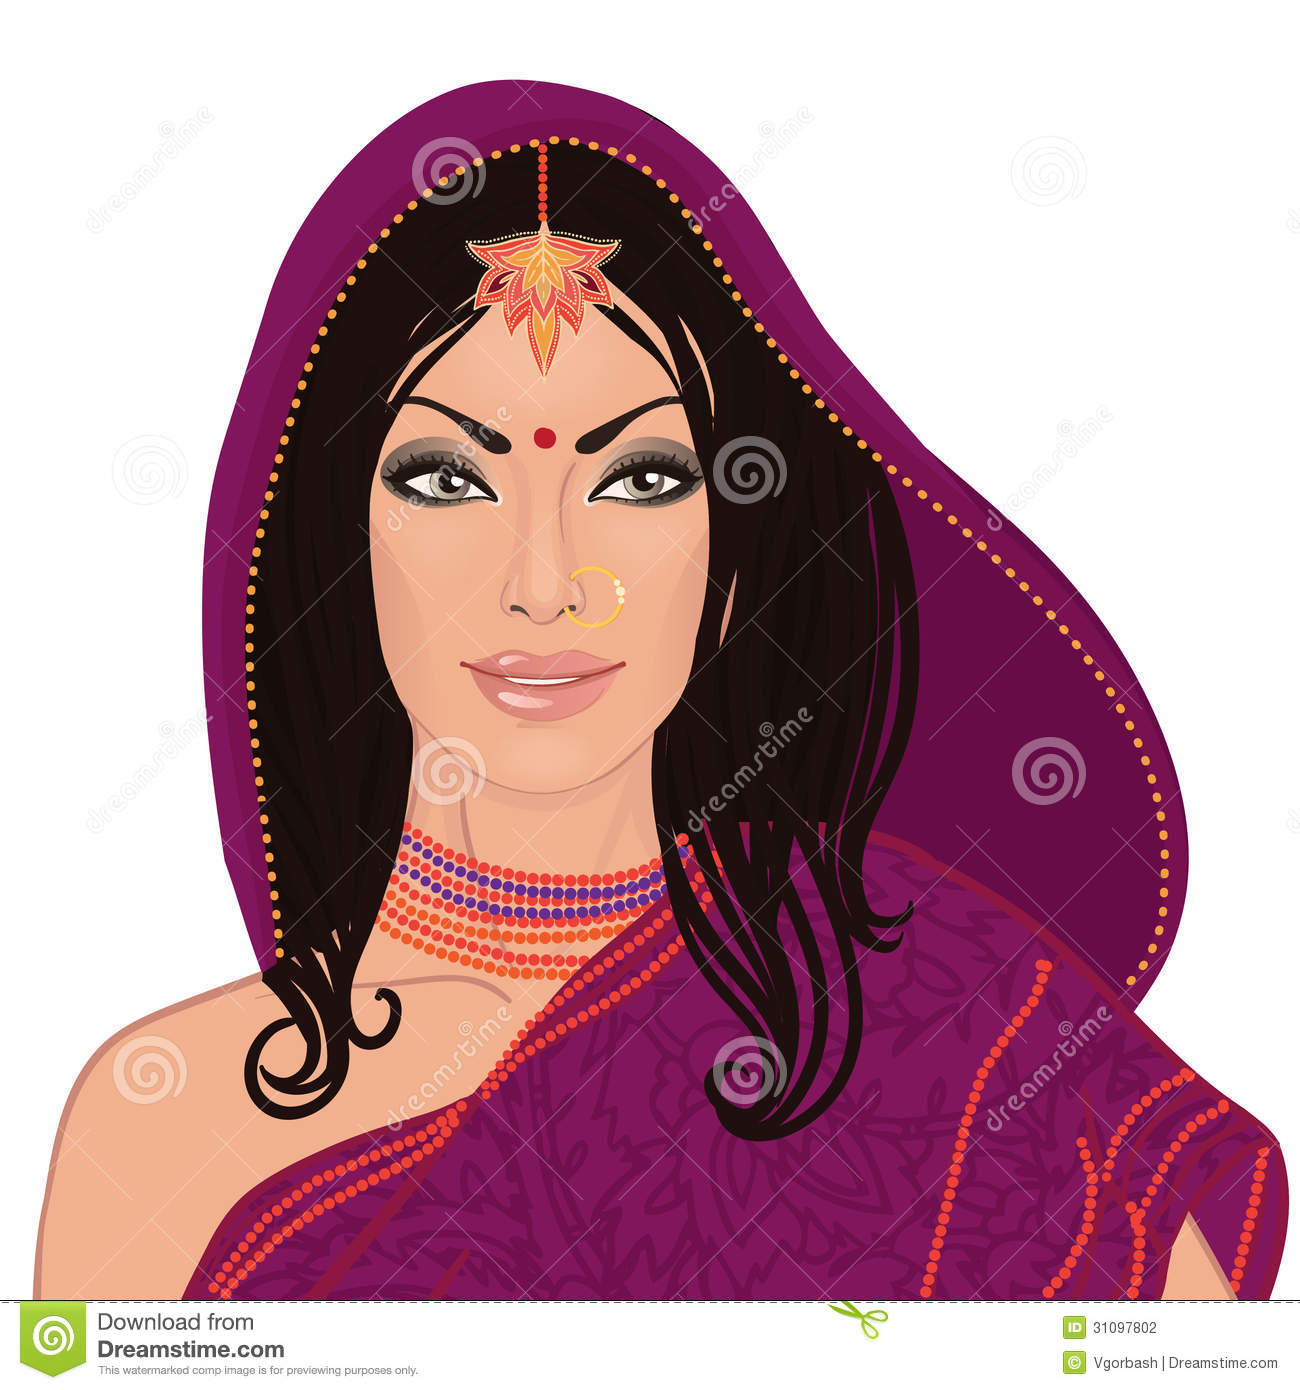 Woman from india clipart jpg royalty free Woman from india clipart - ClipartFest jpg royalty free